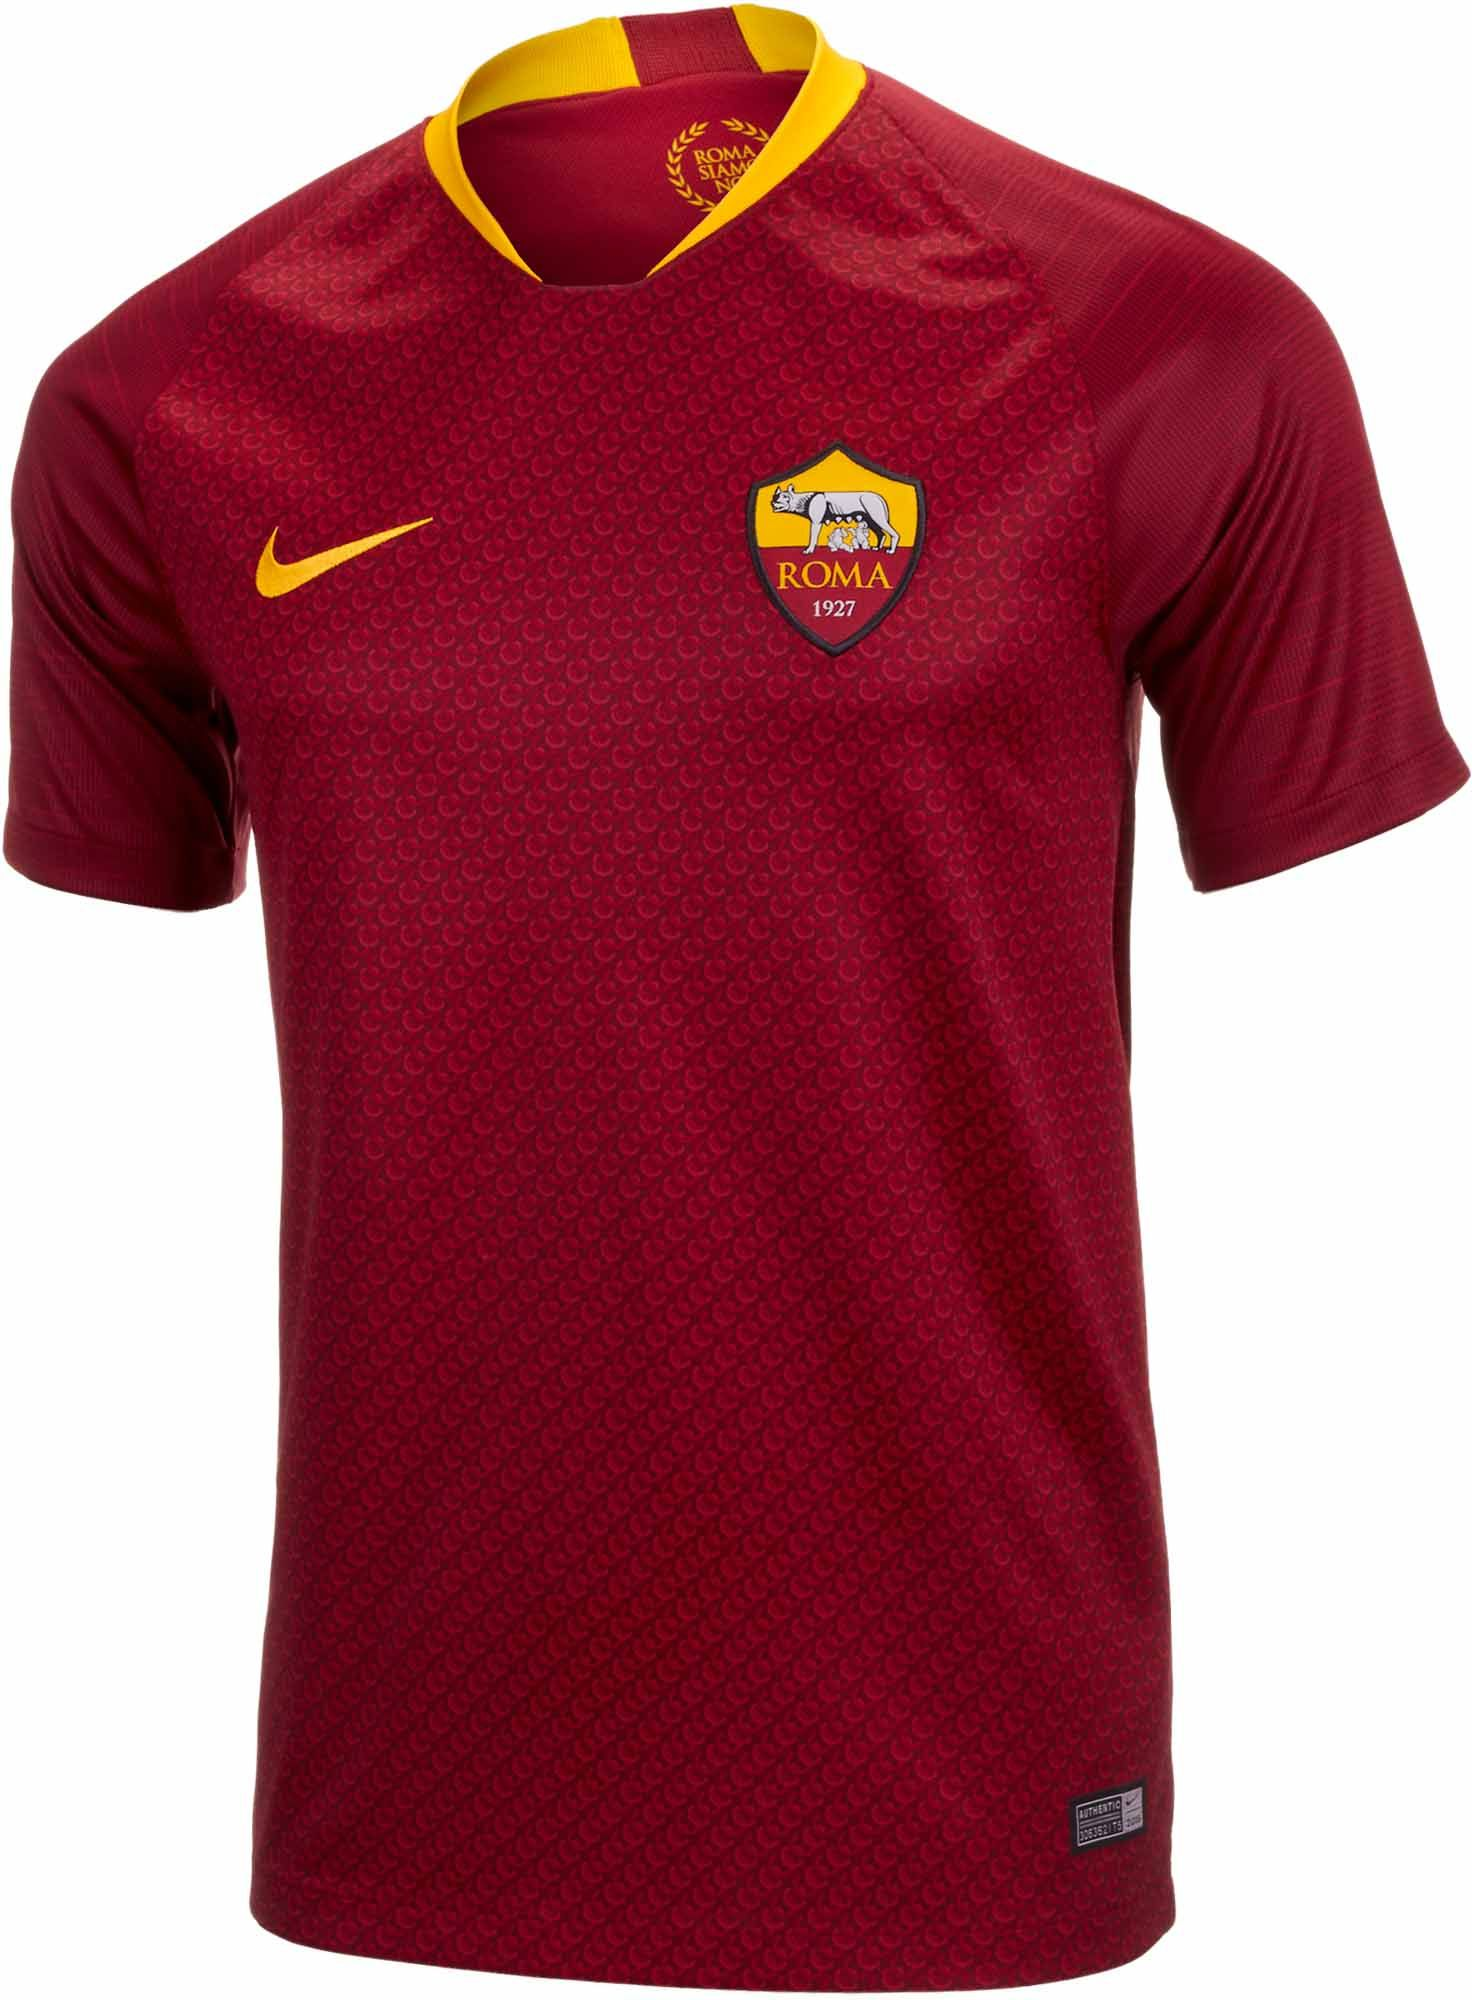 46a451f68df Nike Roma Home Jersey 2018-19 | Soccer Jerseys | As roma, Nike, Mens ...